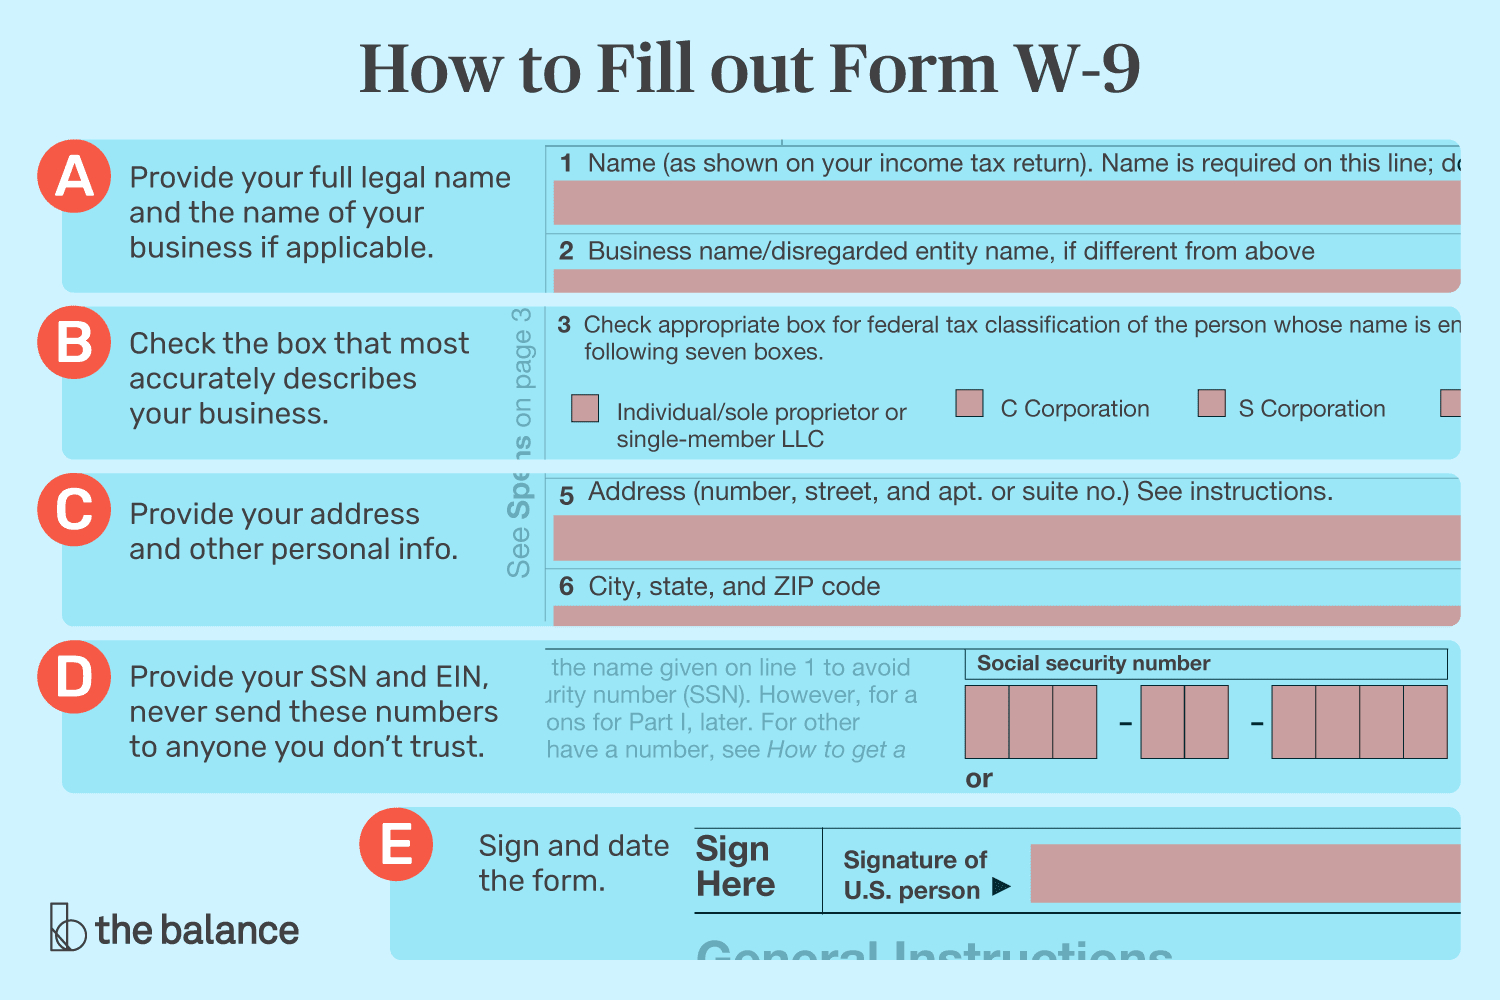 What Is Irs Form W-9 And How Should You Fill It Out? intended for Blank W 9 Printable Form Template